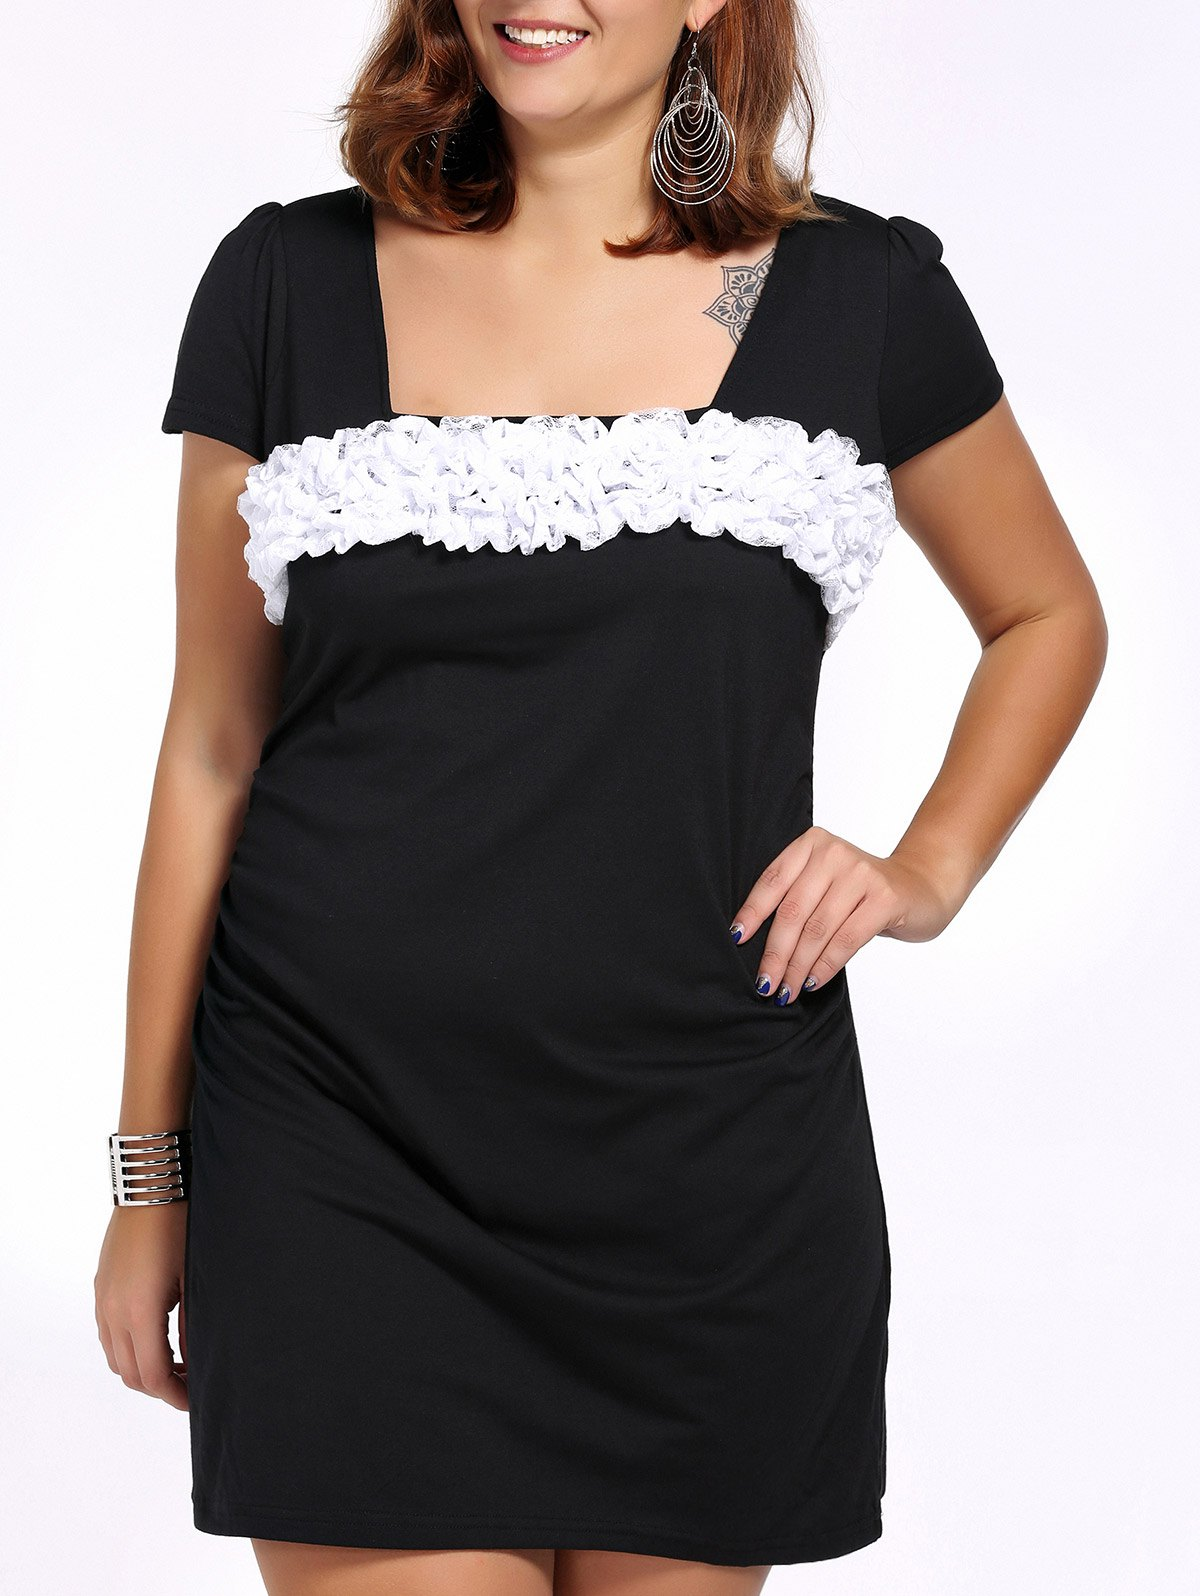 Alluring Plus Size Stereo Flower Design Square Neck Women's Dress - BLACK 3XL